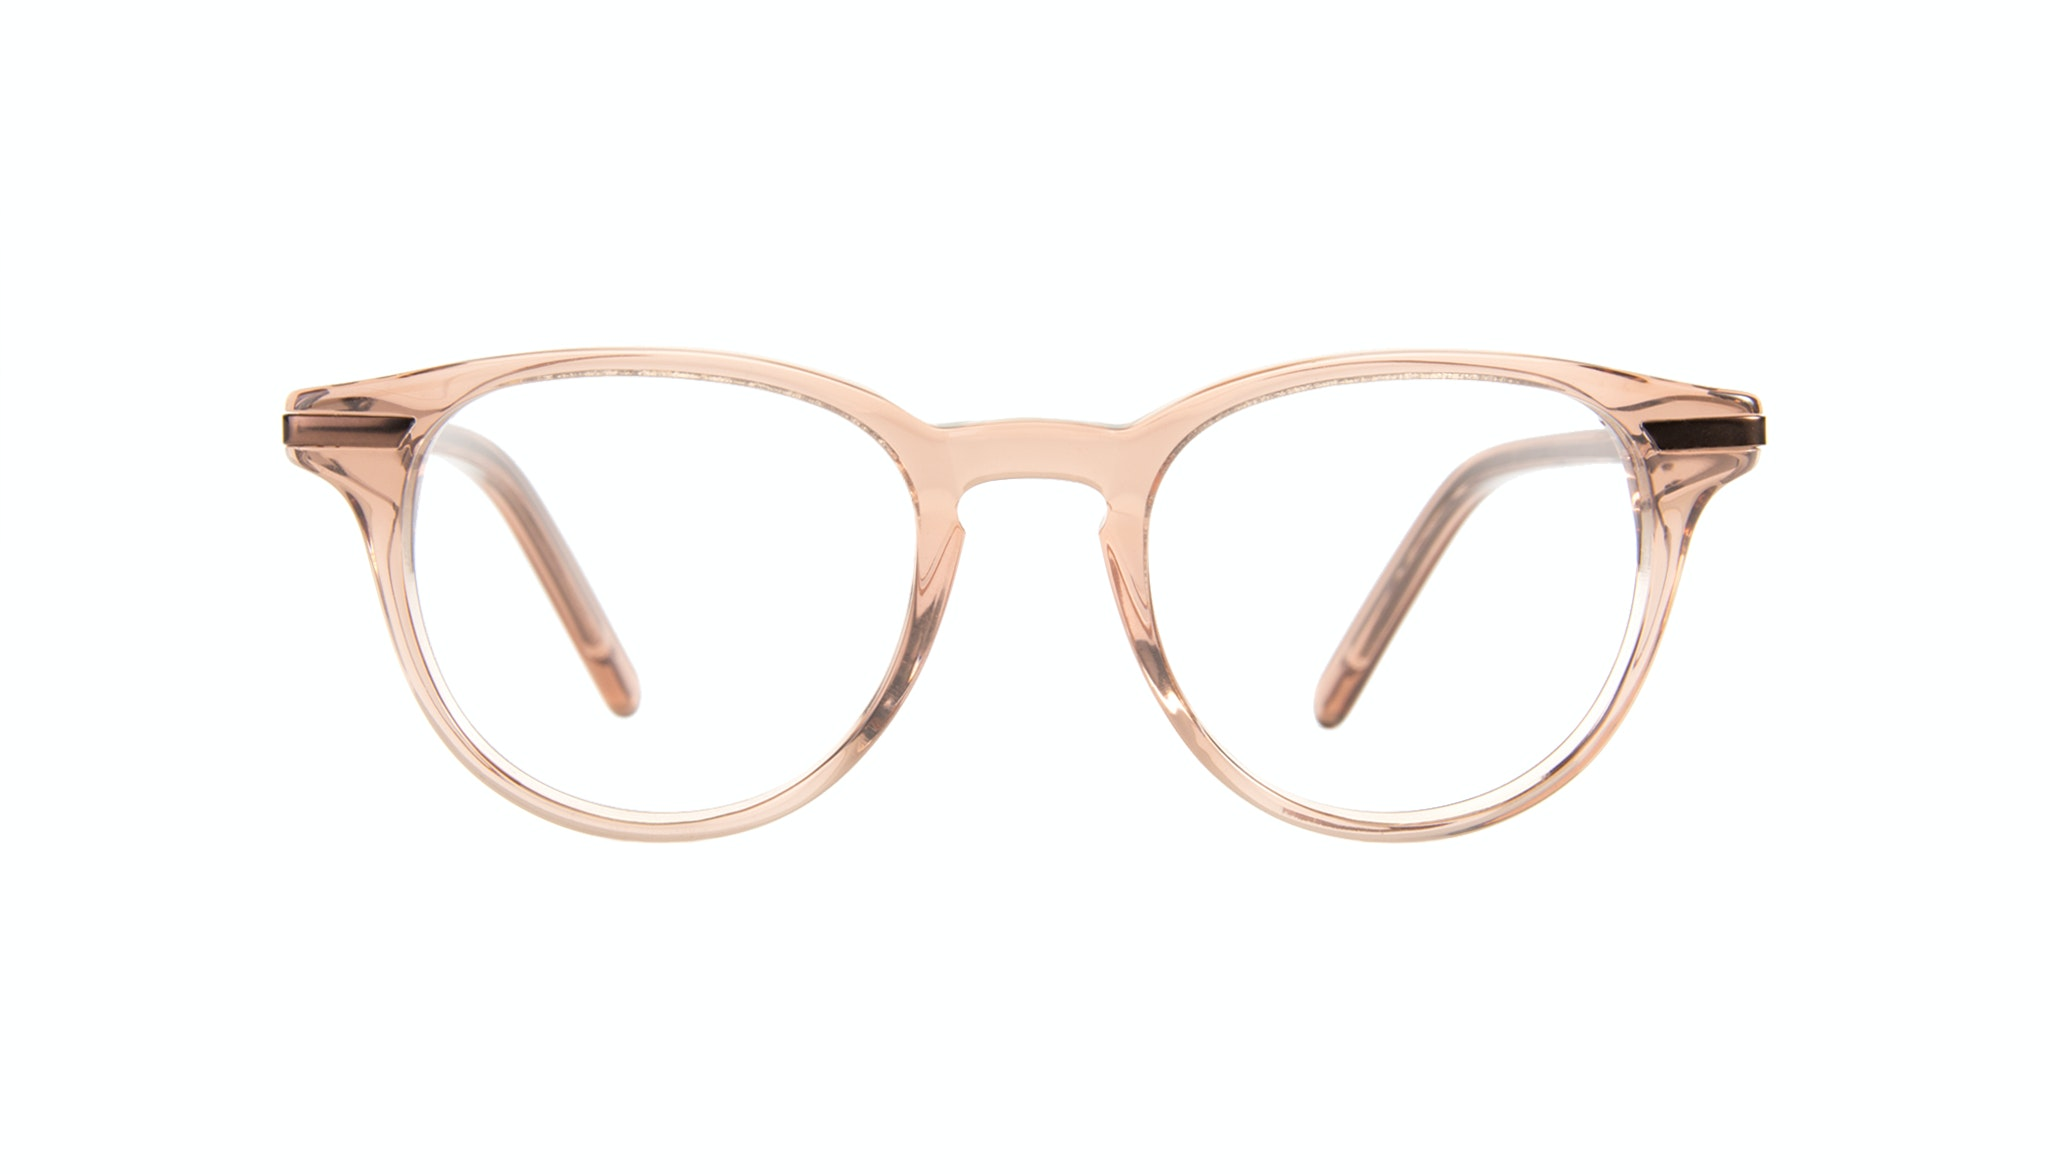 Affordable Fashion Glasses Round Eyeglasses Women Spark Rose